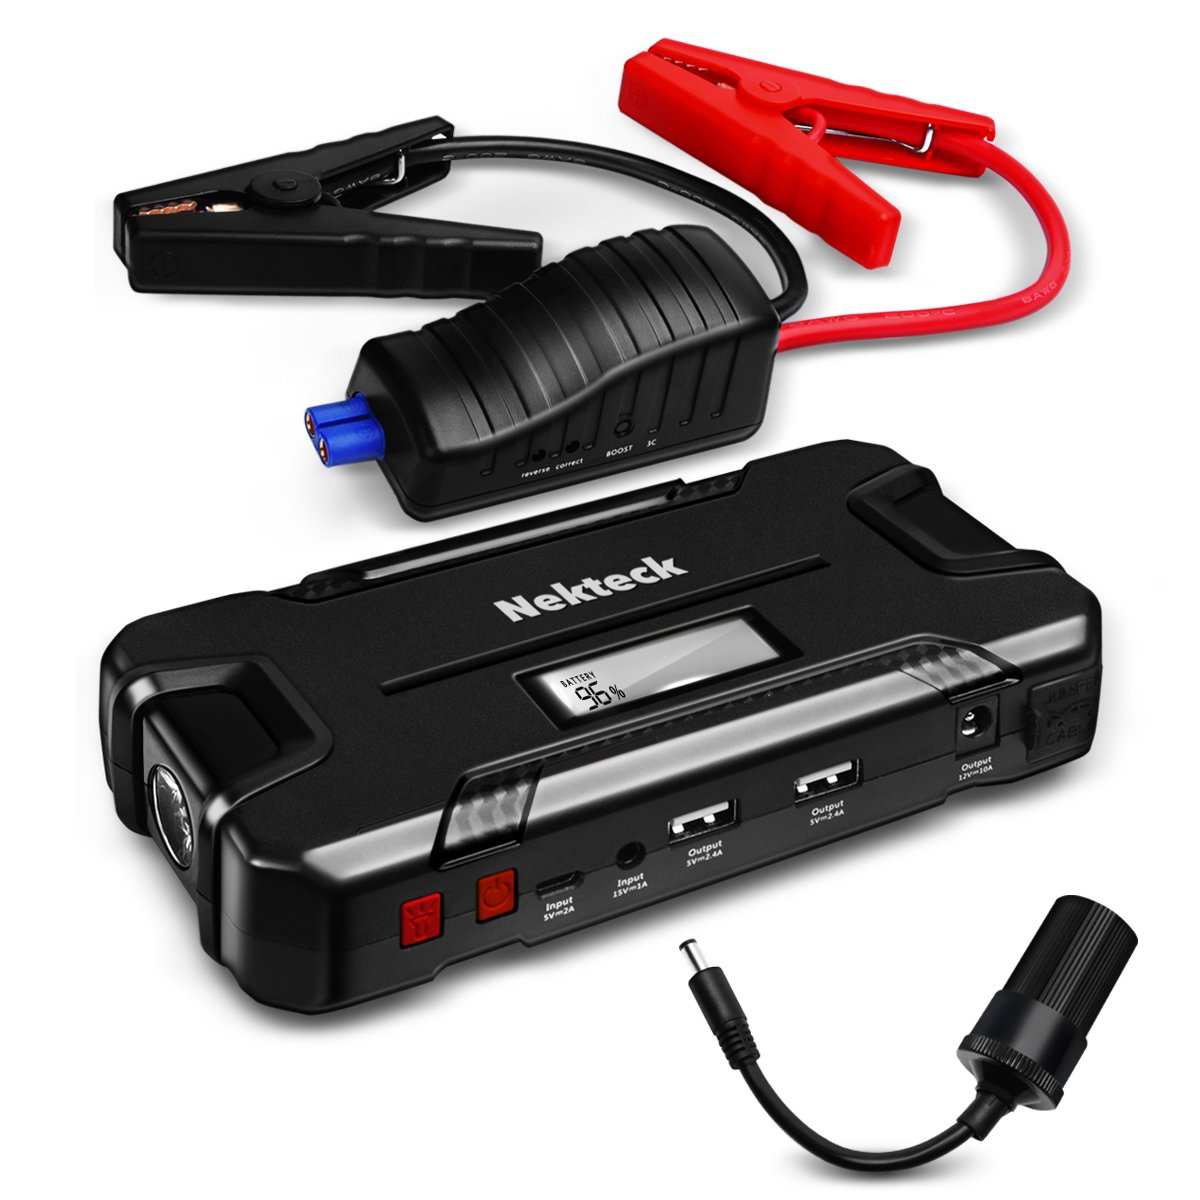 Nekteck Car Jump Starter Portable External Battery Charger 500A Peak With 12000mAh – Emergency Jump Pack Auto Jumper For Sedan Van SUV Boat Smartphone USB Device And More